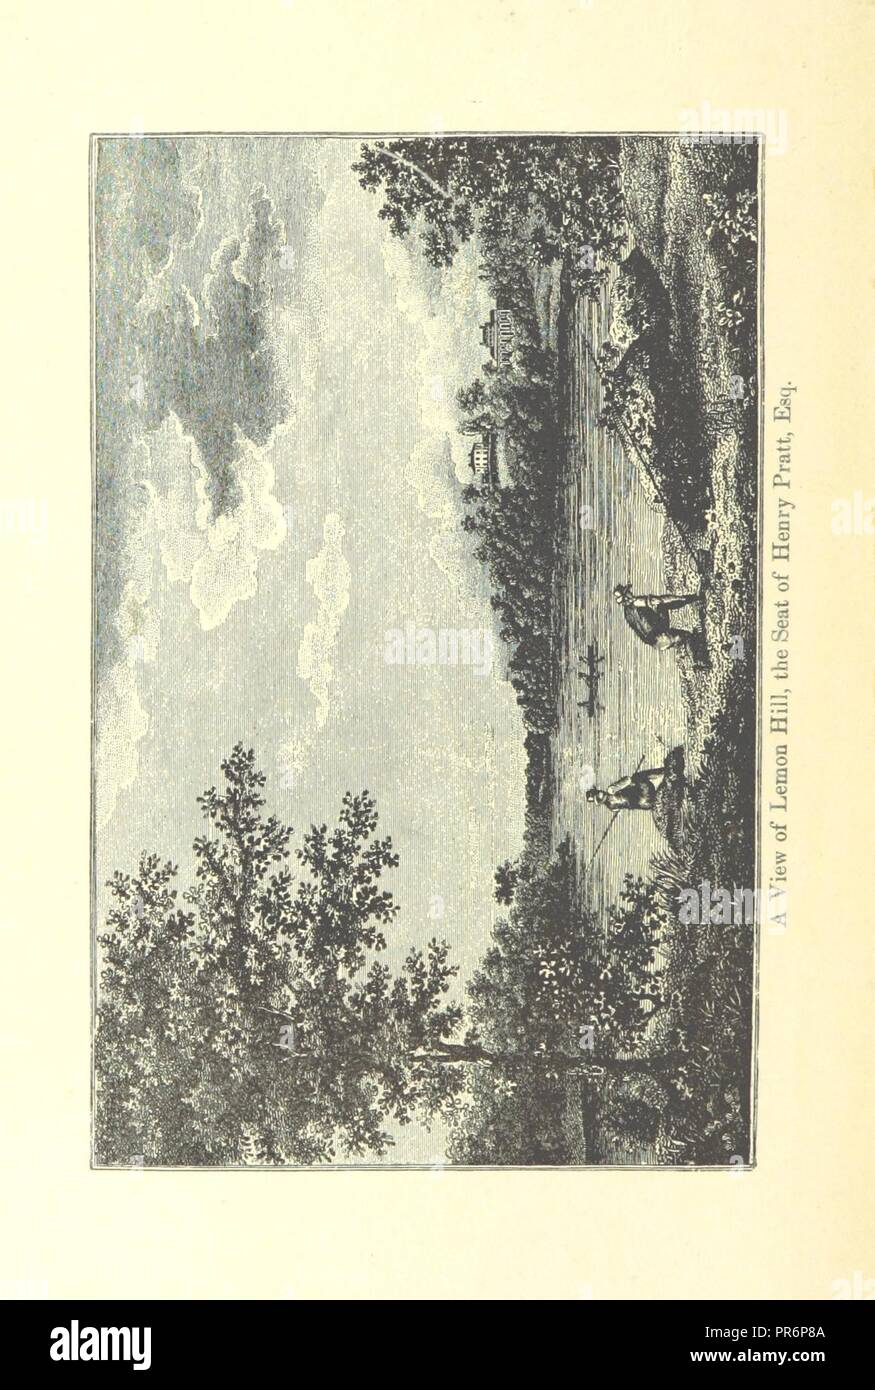 page 10 of 'Lemon Hill and Fairmount Park. The papers of C. S. K. and T. Cochran, relative to a Public Park for Philadelphia. Published in 1856 and 1872. Reprinted [with a preface and plan] by H. J. Smith' by The 0033. - Stock Image